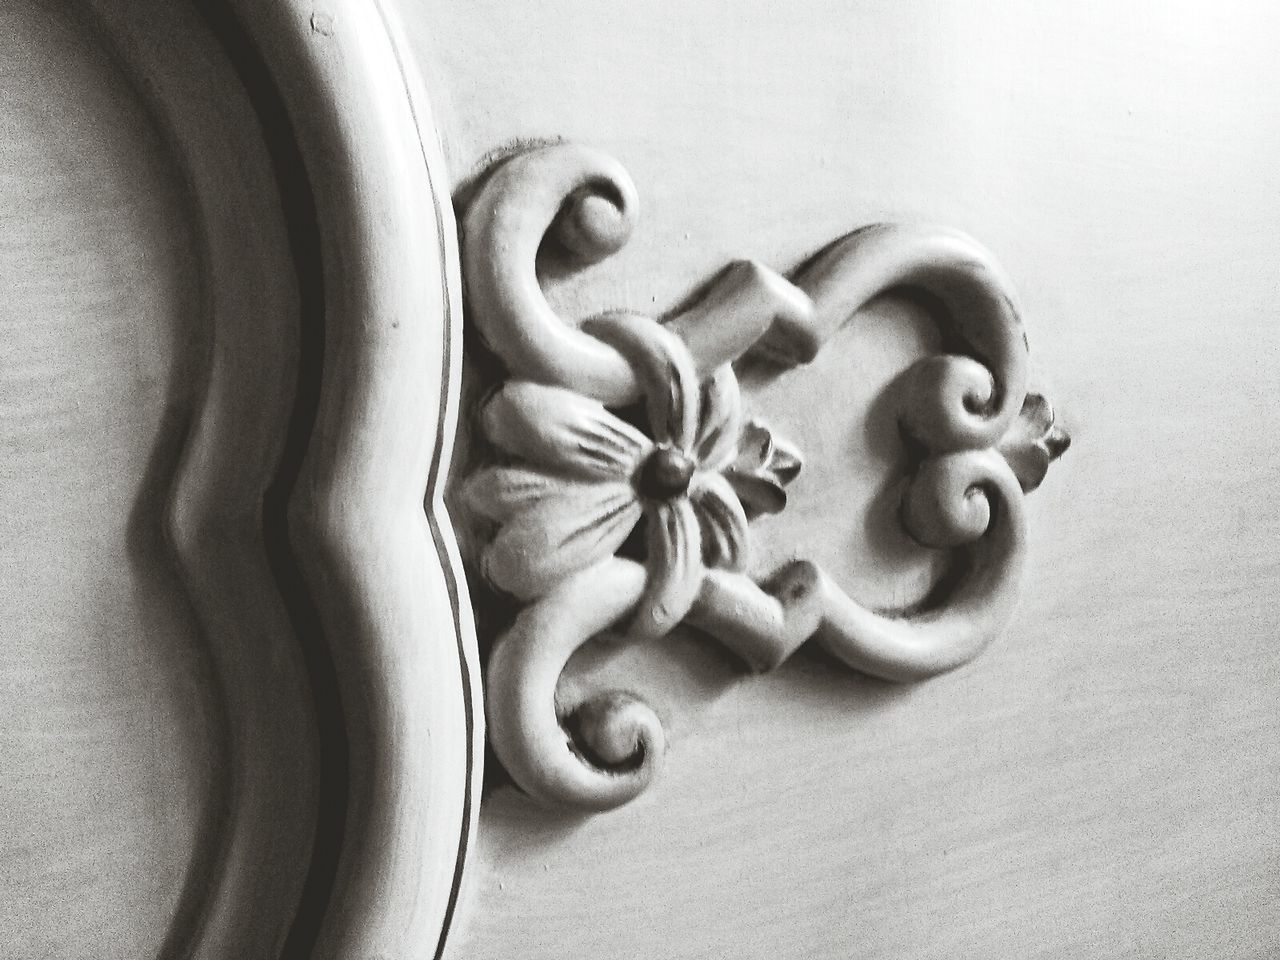 Wooden Decoration Door White Door Wooden Door Decor Black And White Black & White Black And White Collection  White Background White Color White Album Wooden Flower Masterpiece Vintage Furnituredesign White Furniture Vintage Door Vintage Decor Fleur De Lis Wooden Furniture Old But Awesome Old Stuff Old Furniture Close-up Furniture Details